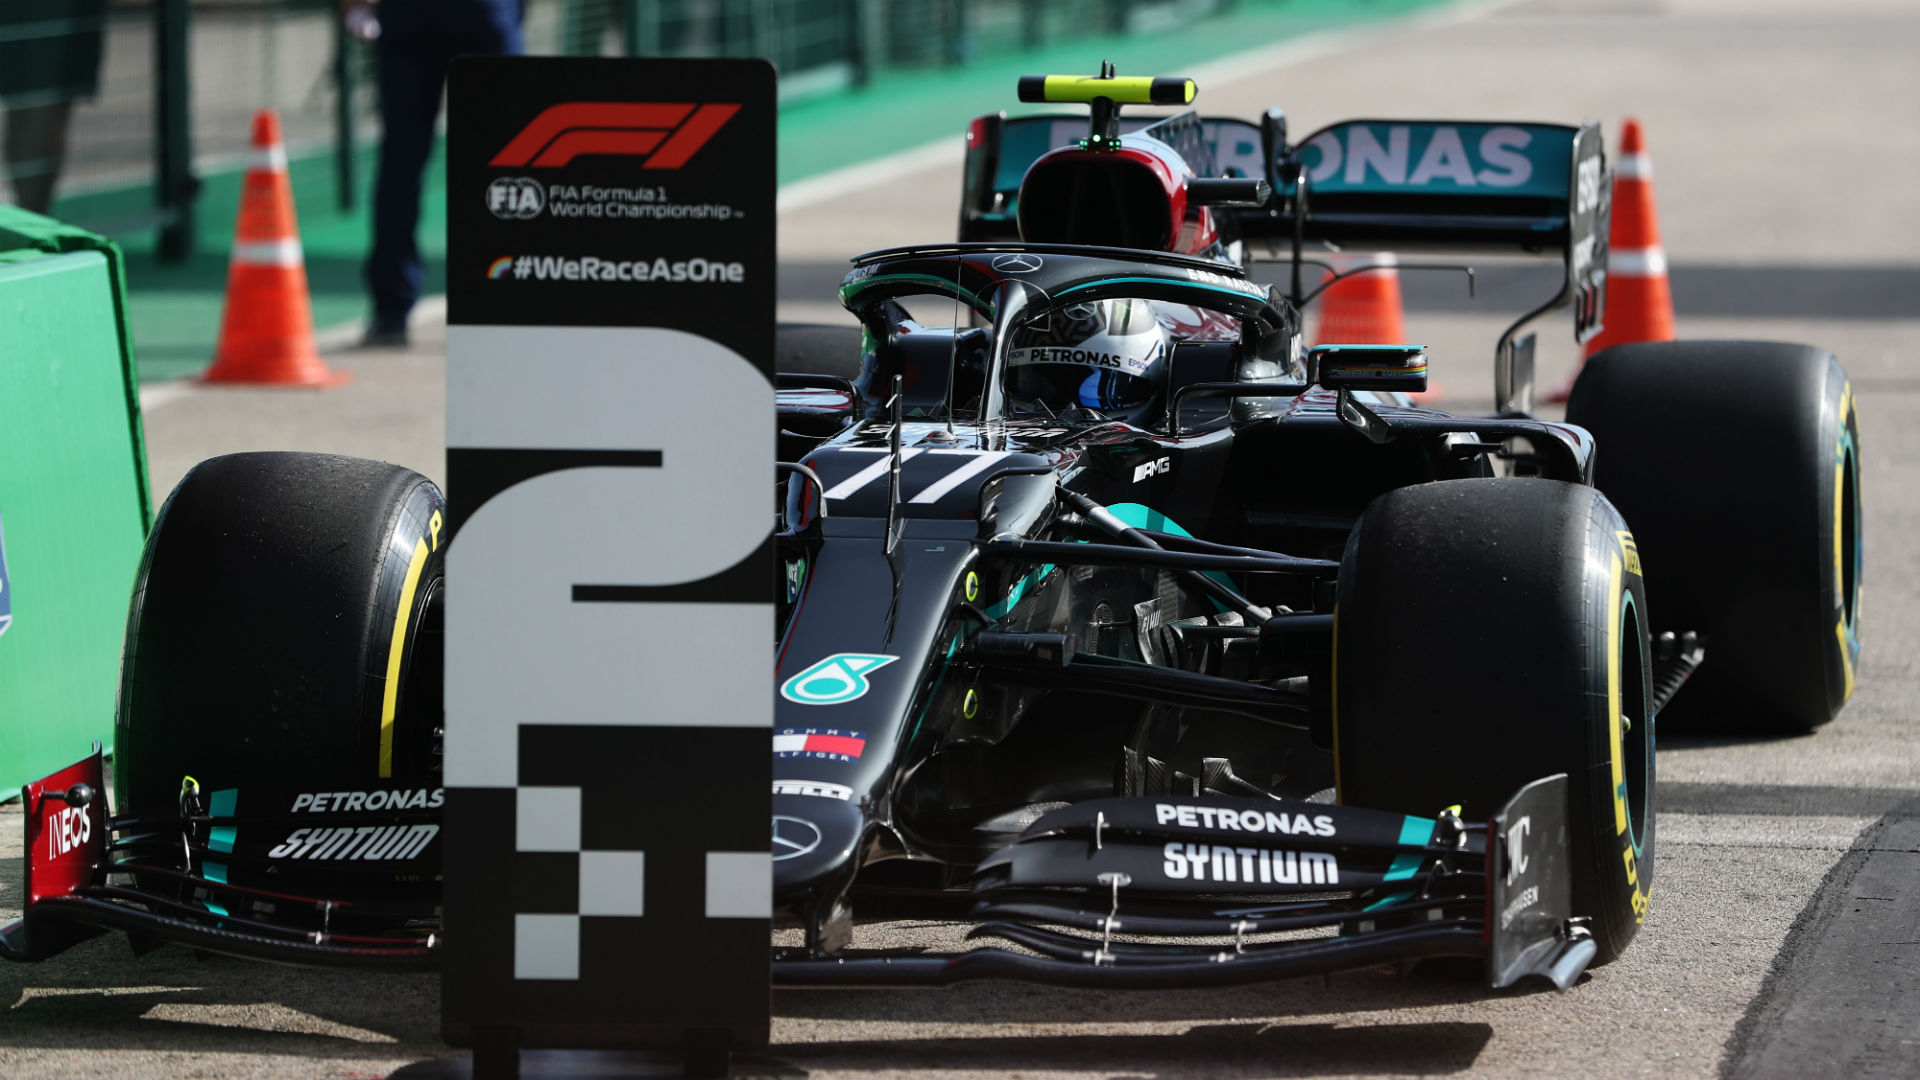 F1 2020: Bottas rues choosing different strategy to pole-sitter Hamilton